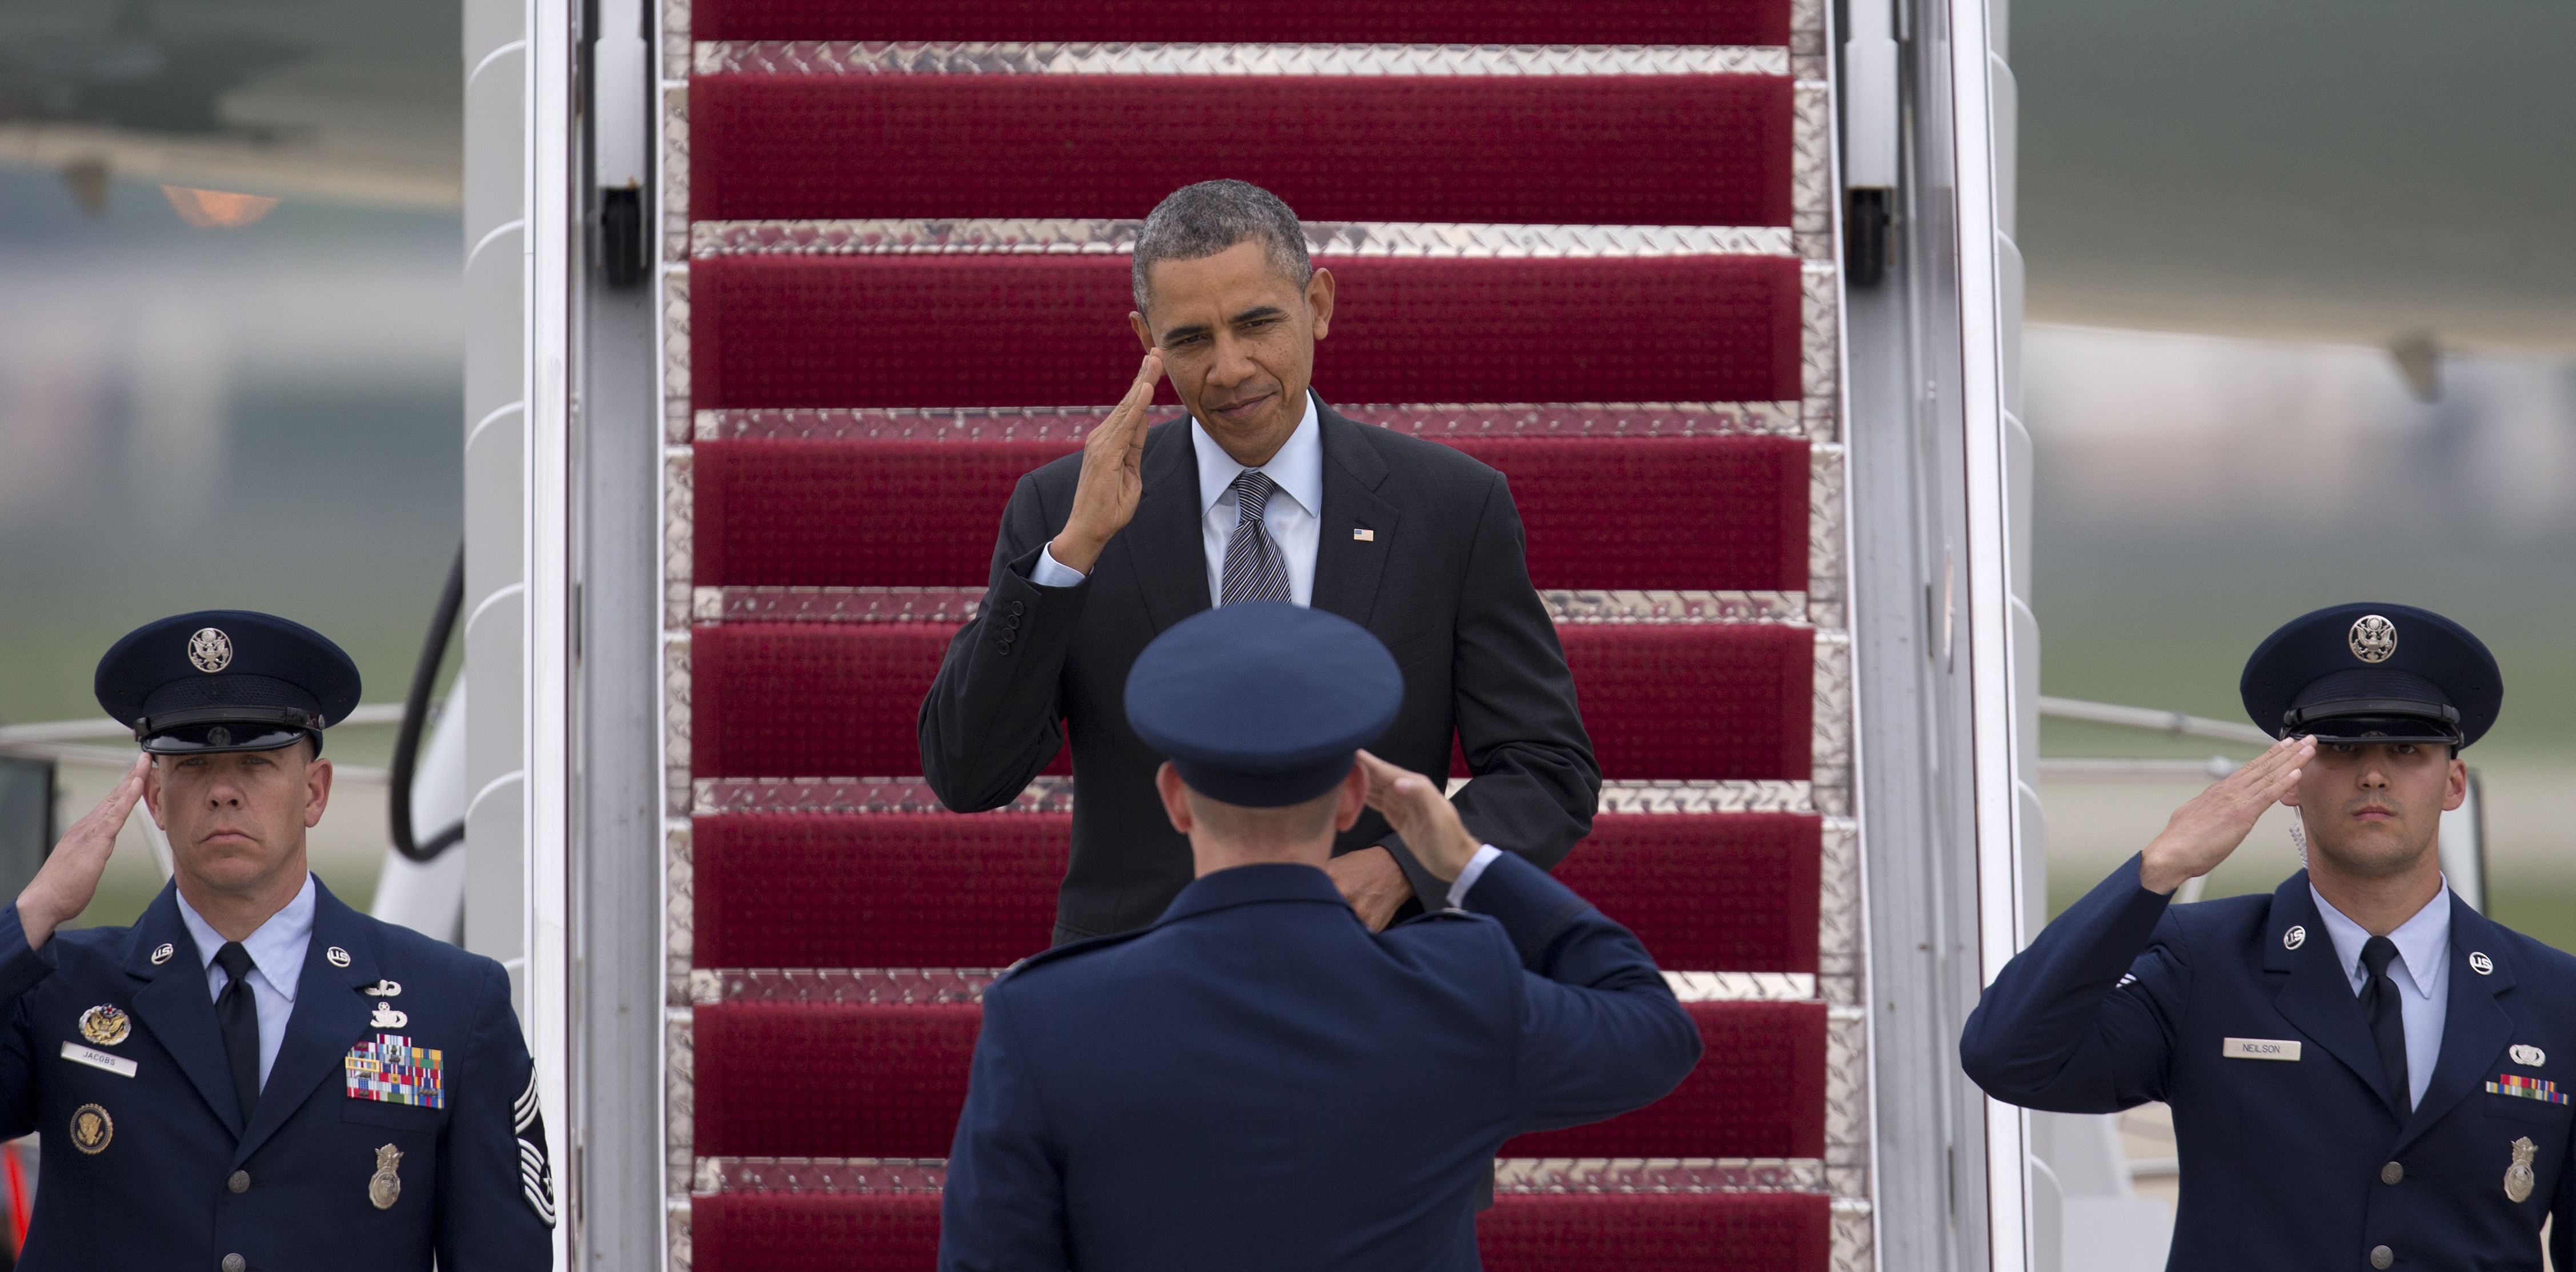 President Barack Obama returns a salute from Col. William M. Knight as he steps off of Air Force One in Andrews Air Force Base, Md, May 9, 2014.